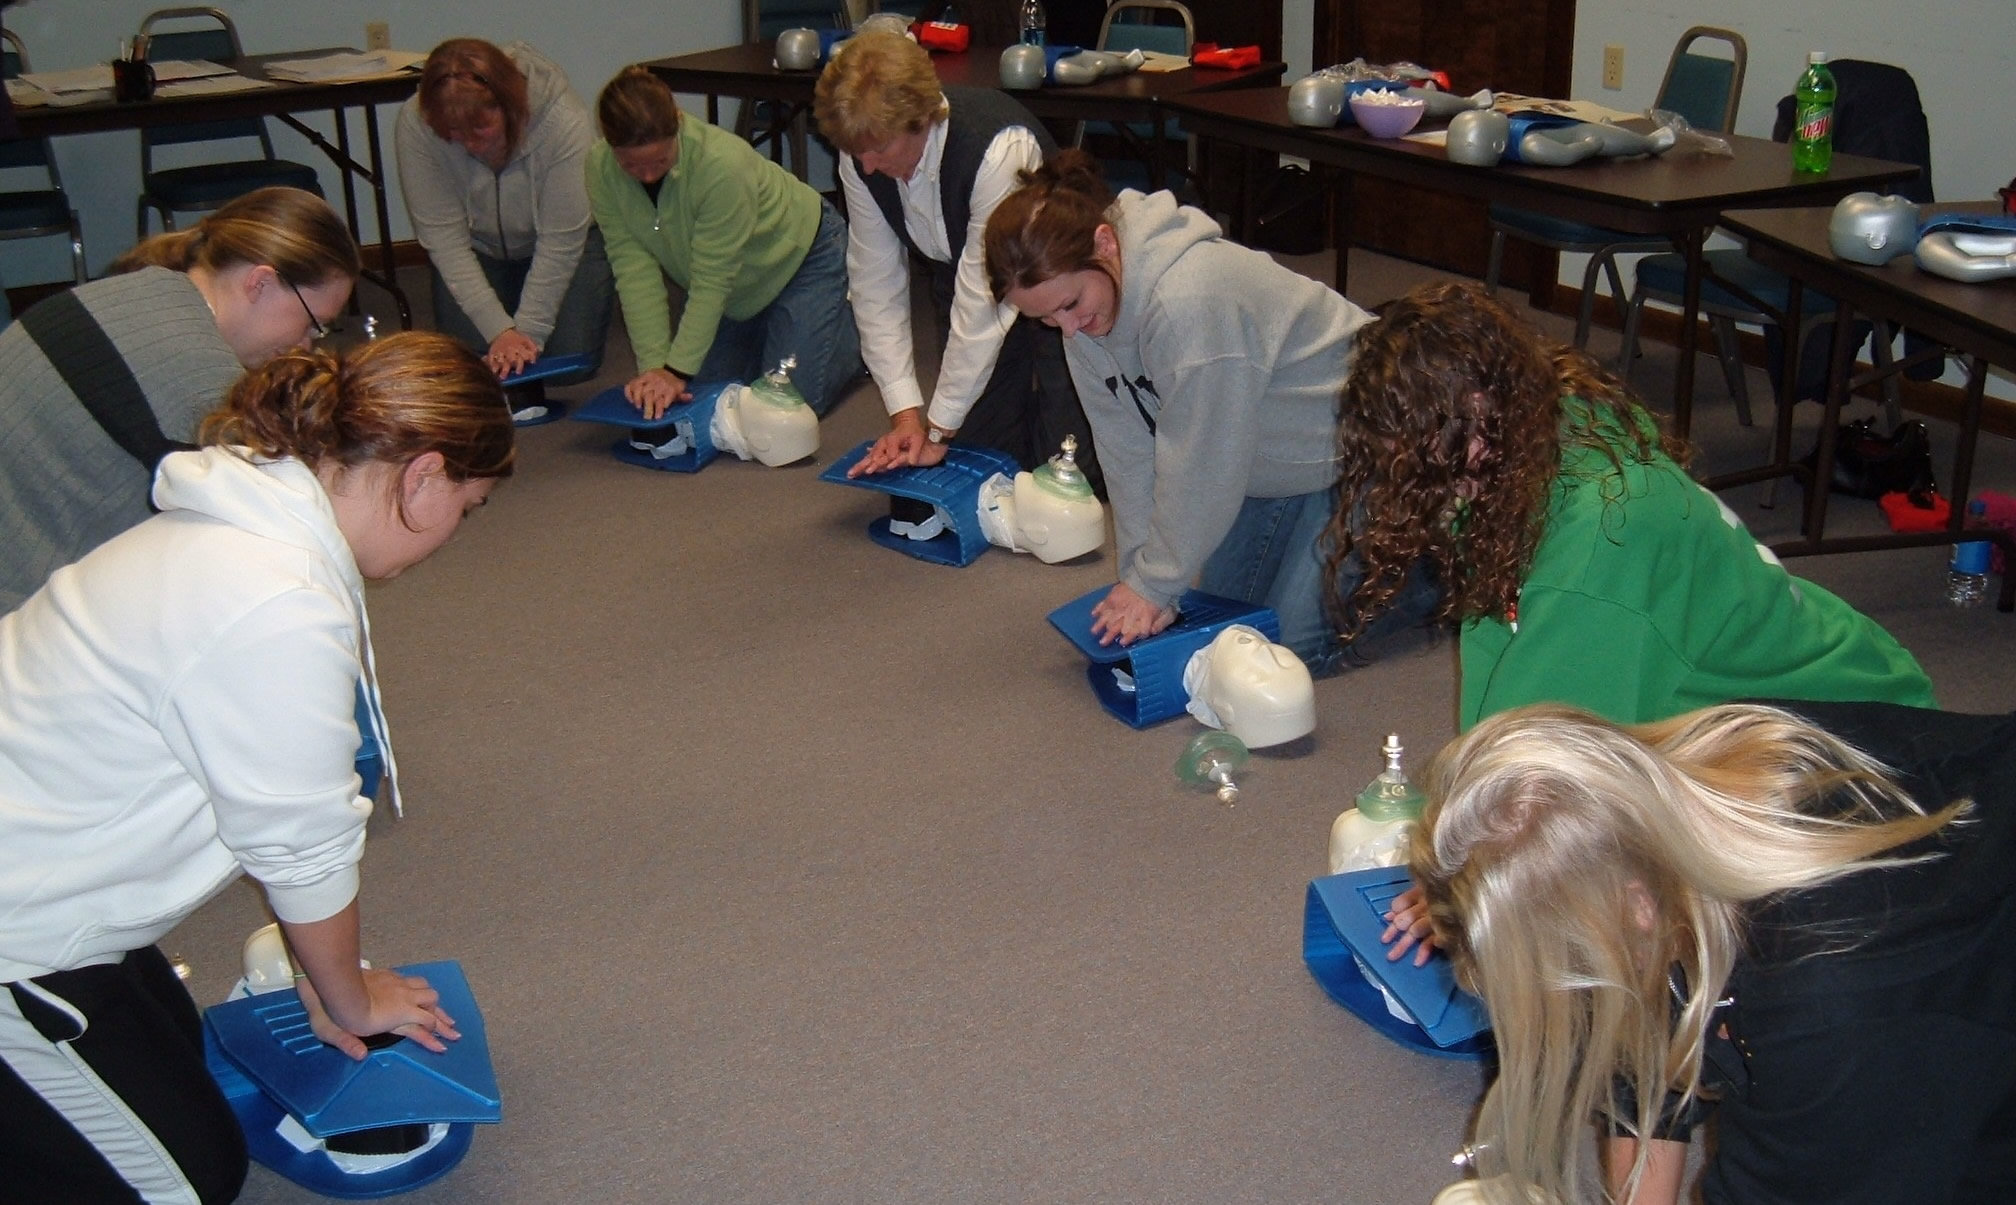 First Aid Training Video And Photos